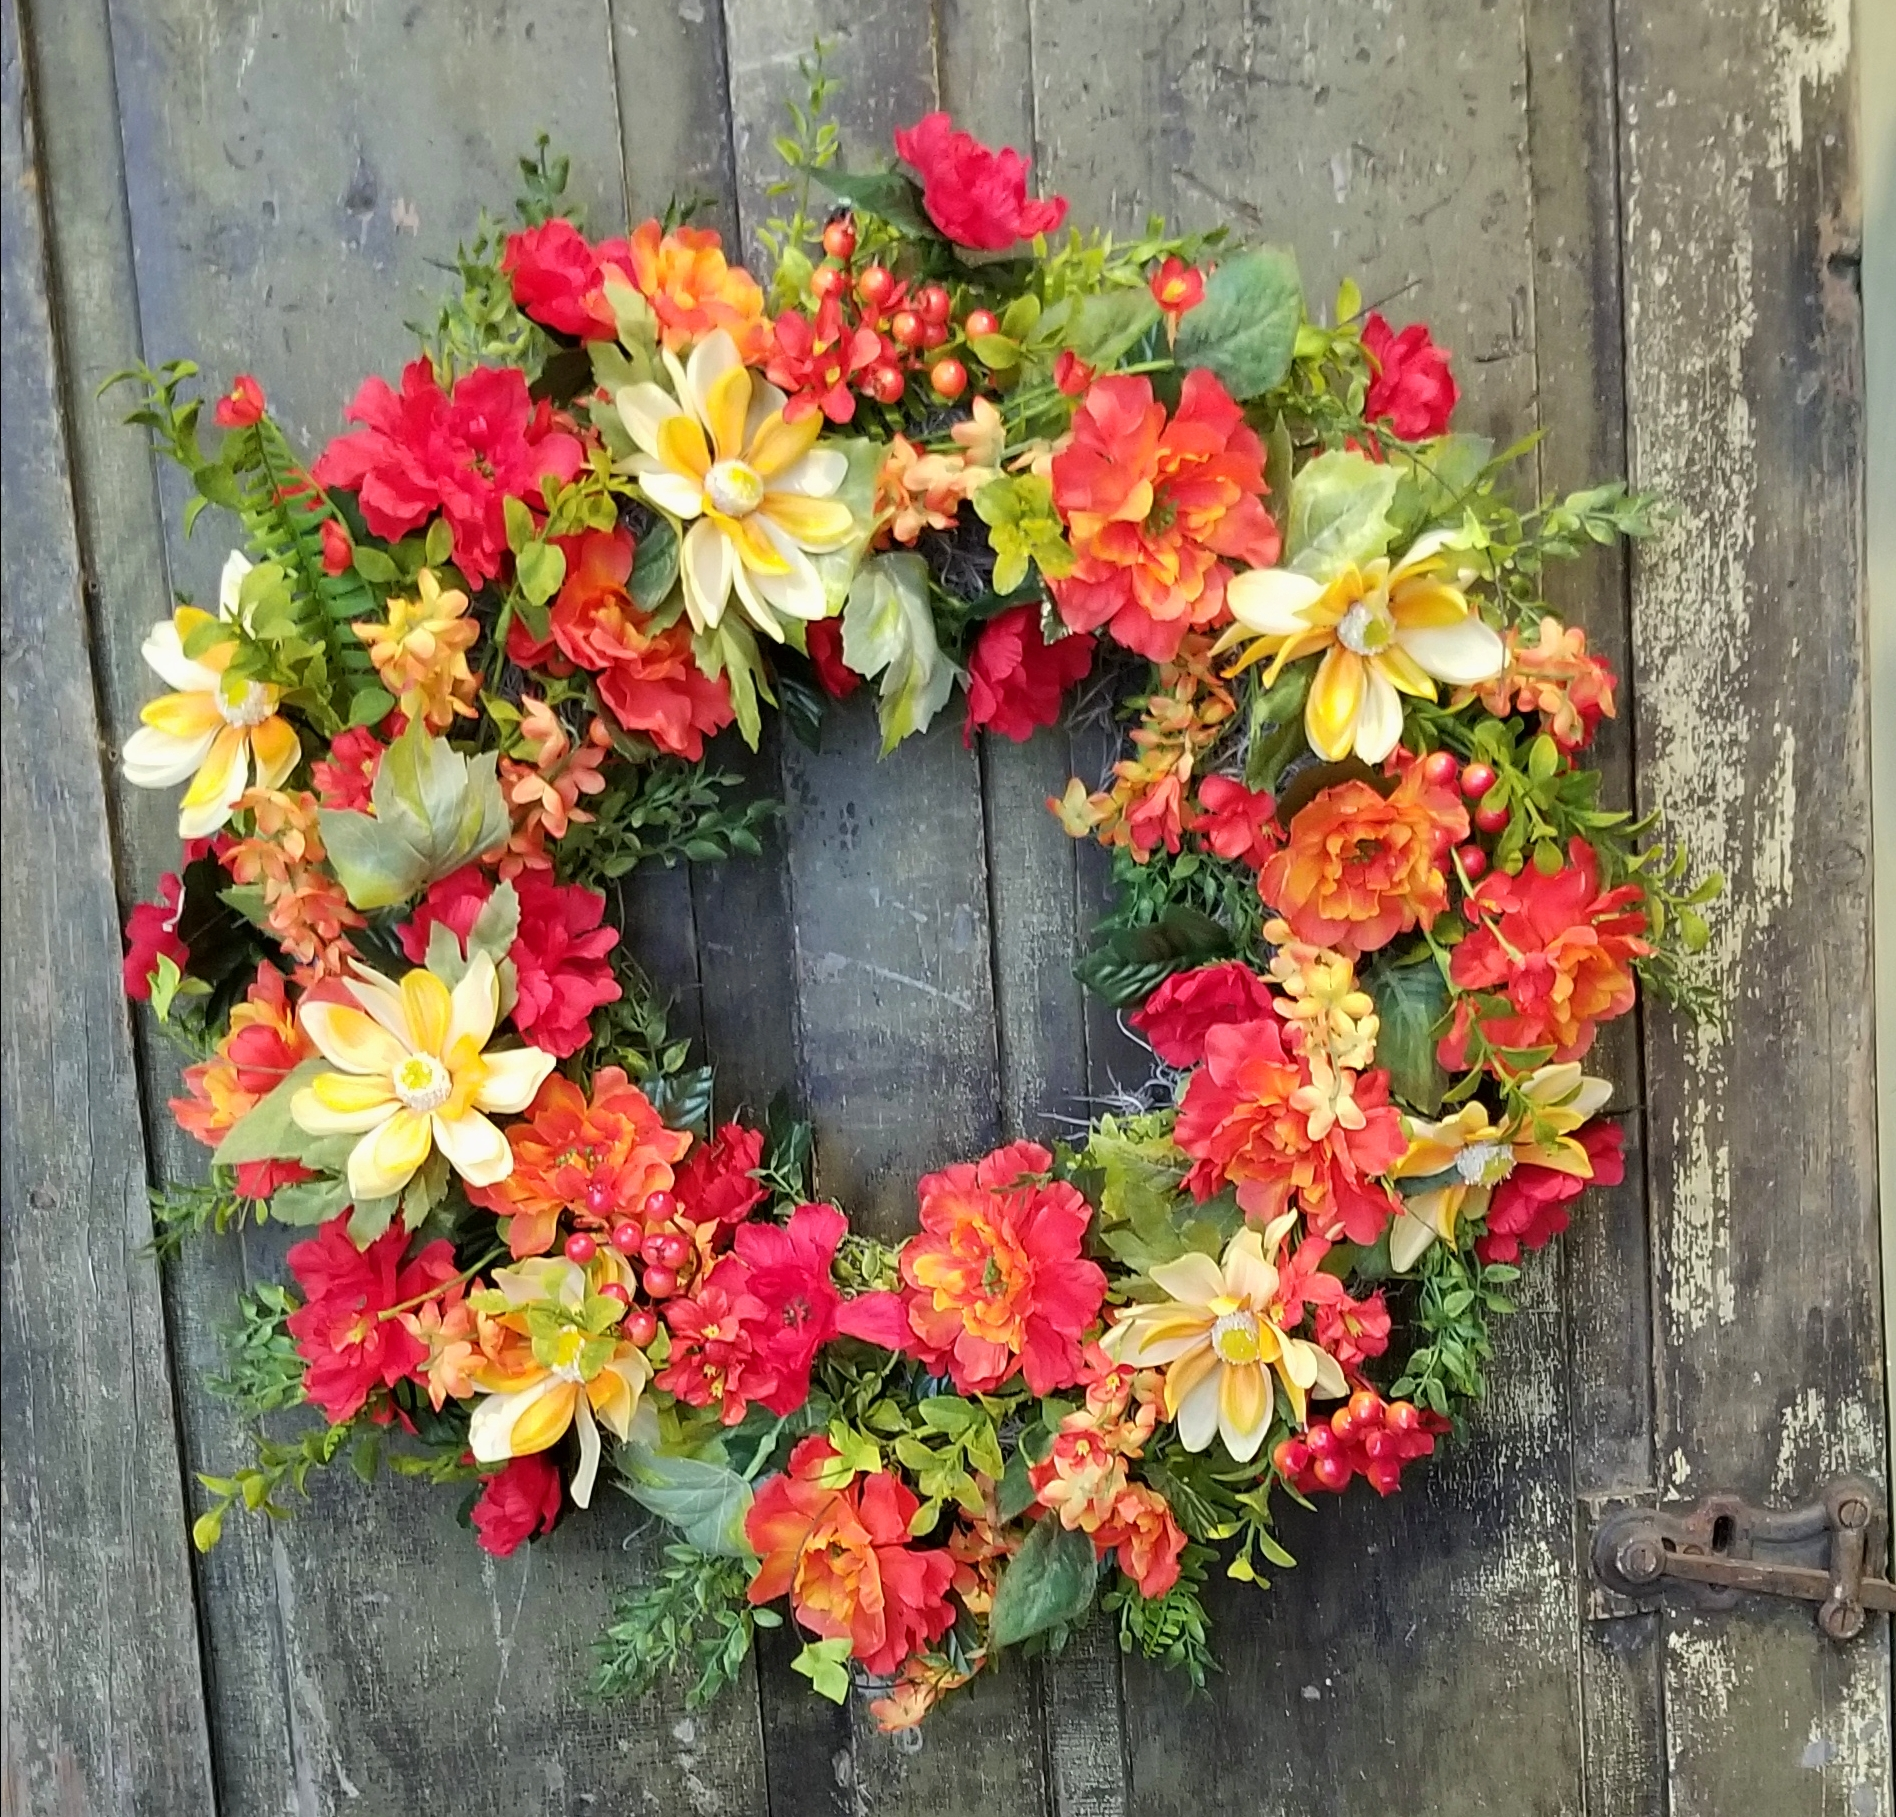 Summer Sunset Wreath Inspired Designs By Keith Phelps